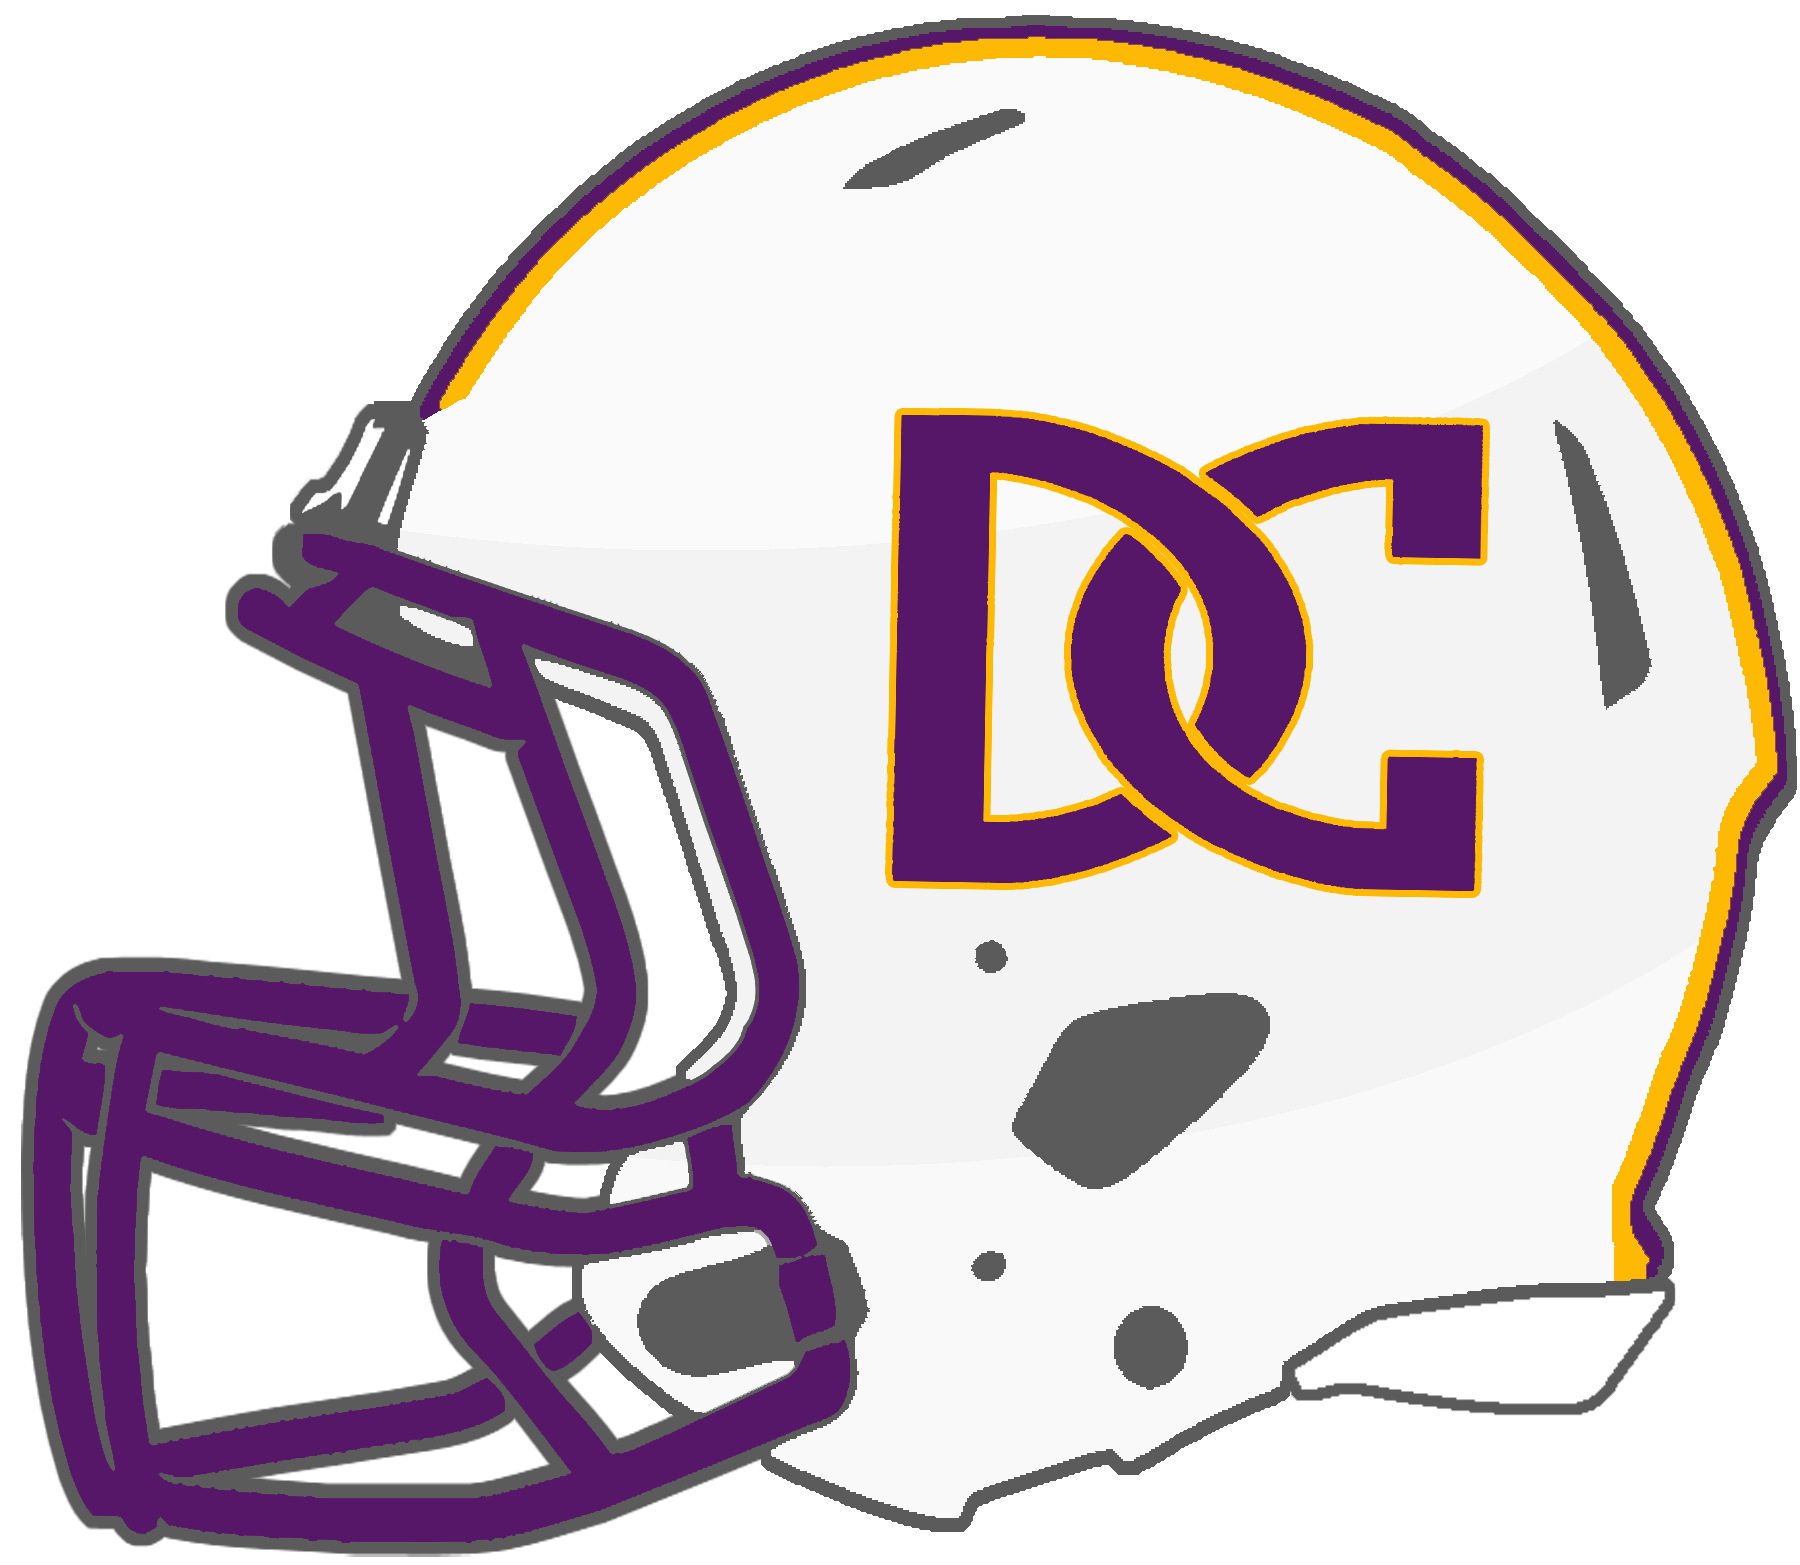 Falcons football helmet clipart graphic free library Mississippi High School Football Helmets: 6A graphic free library